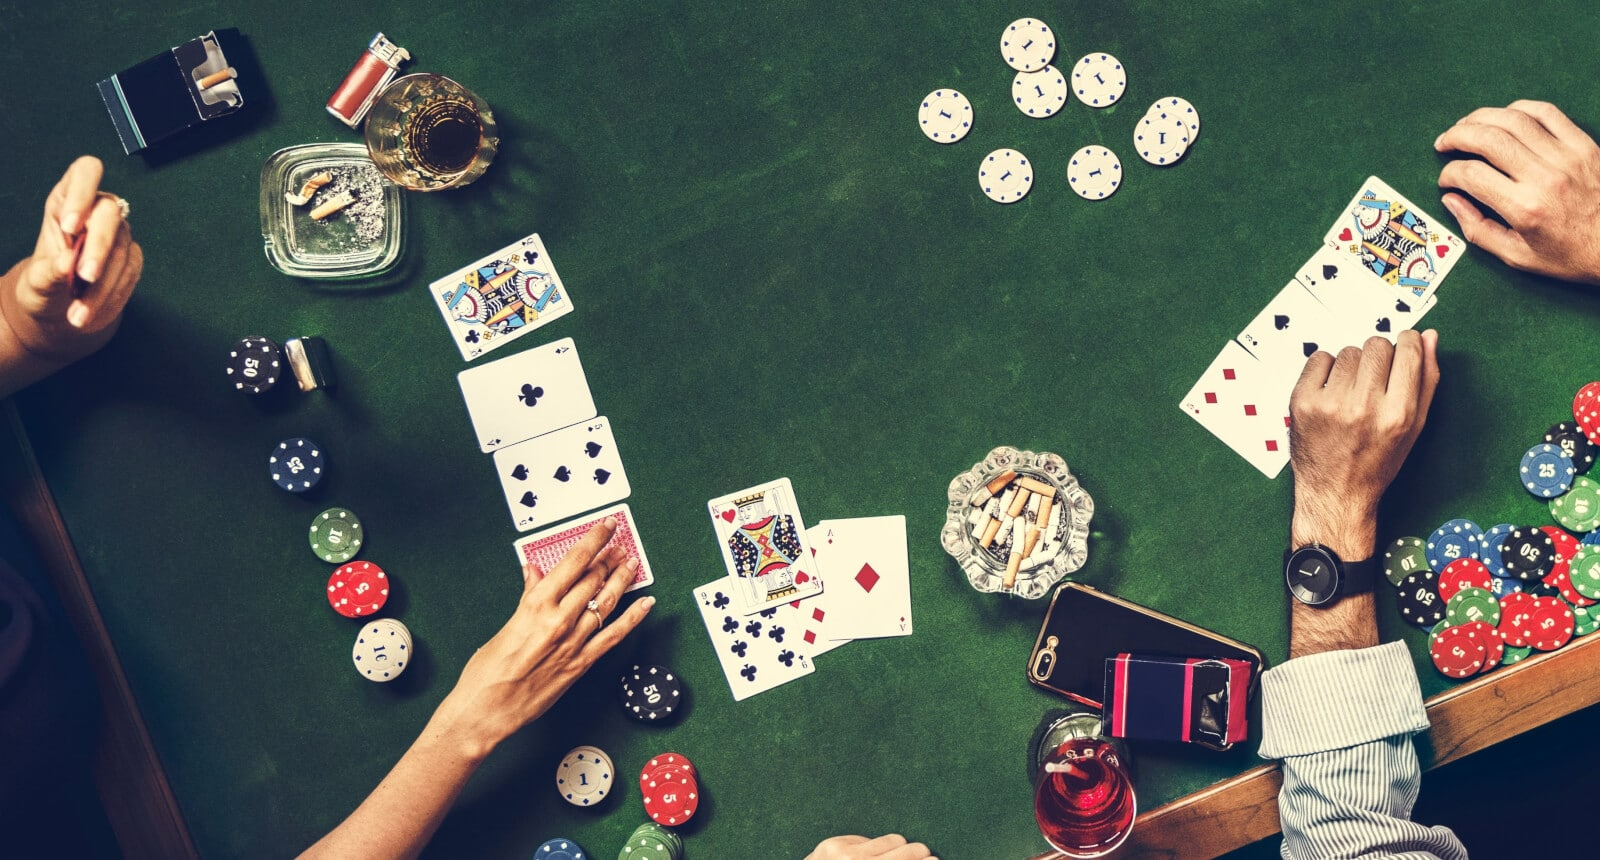 How safe is online gambling?